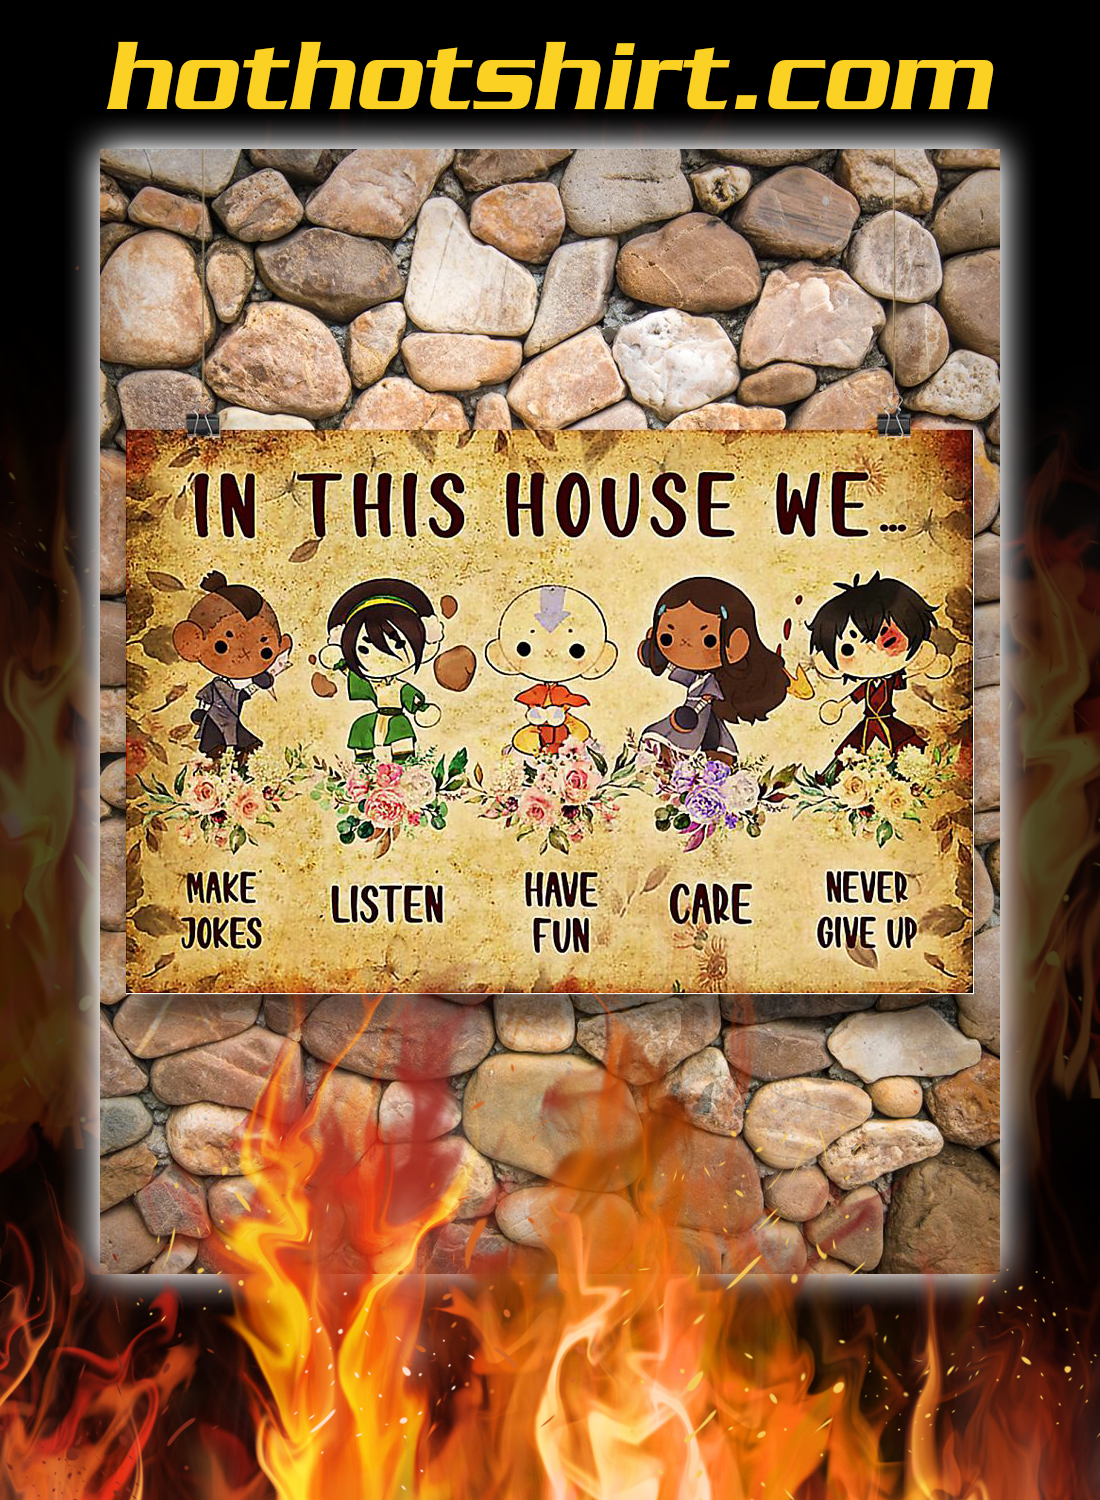 Last airbender in this house we poster 2